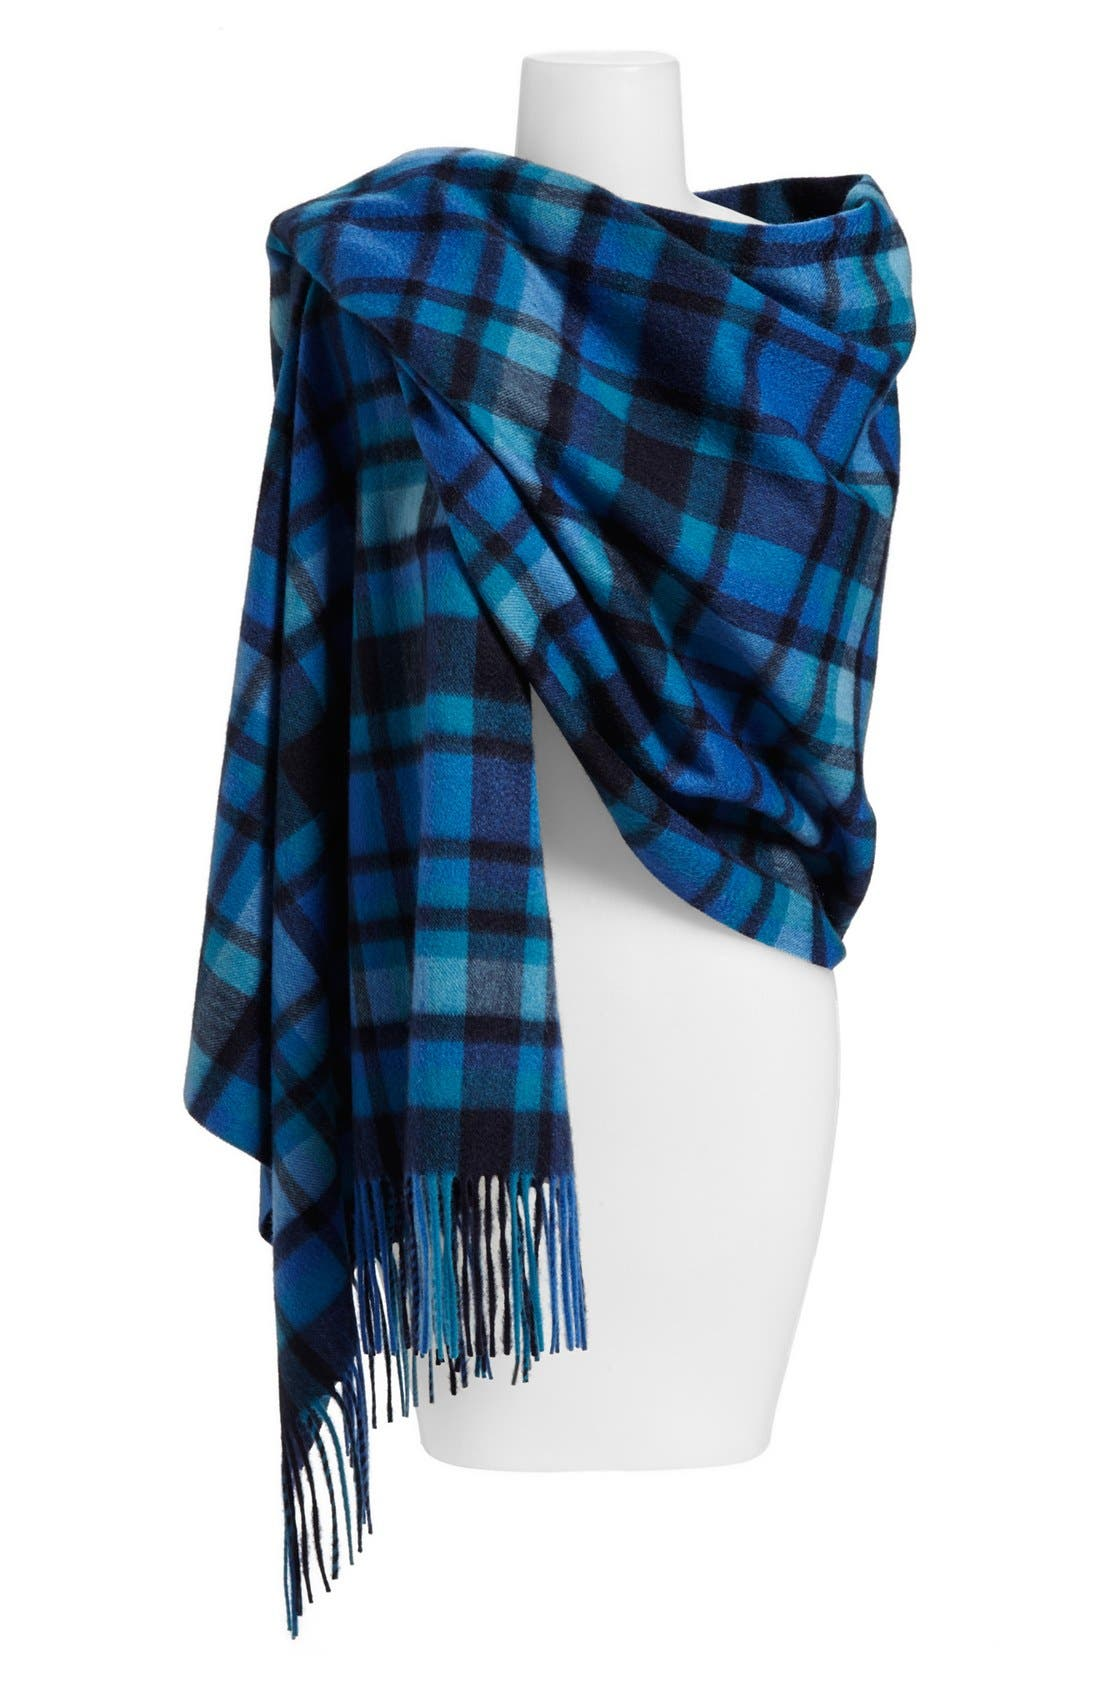 Alternate Image 1 Selected - Nordstrom Plaid Woven Cashmere Wrap